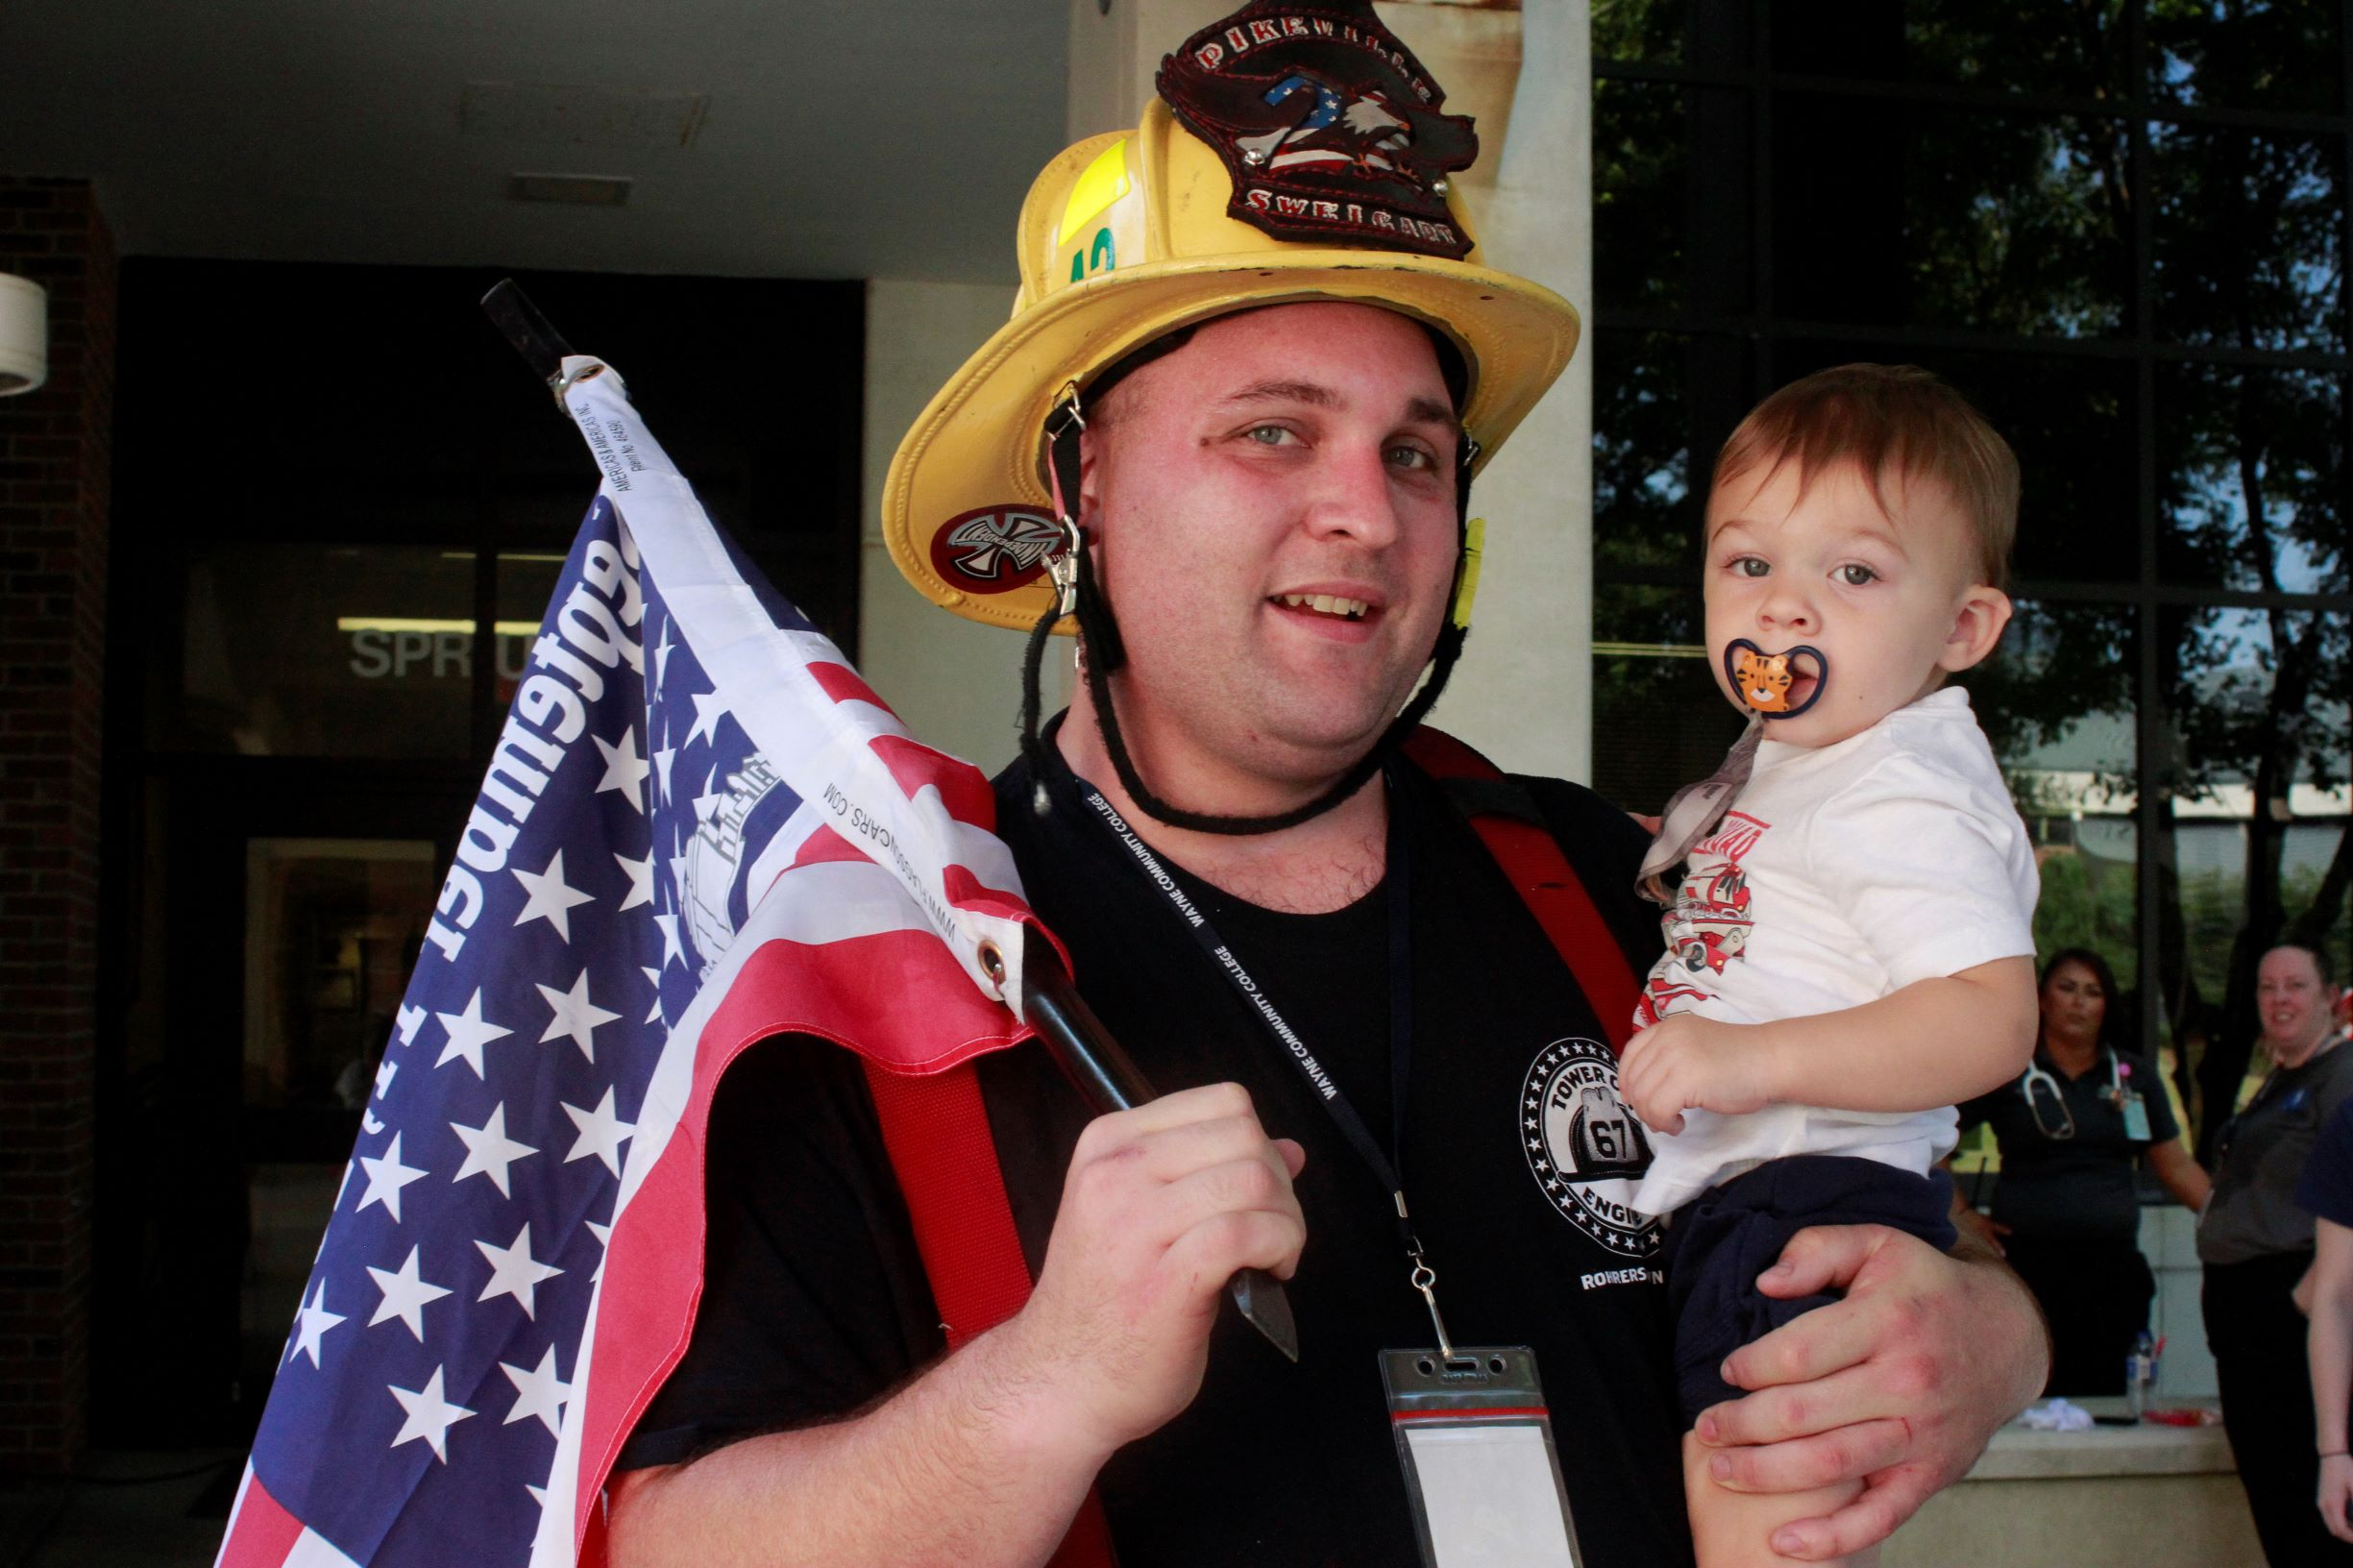 WCC Students Follow In The Footsteps Of Their First Responder Brethren On 9/11 (PHOTOS)